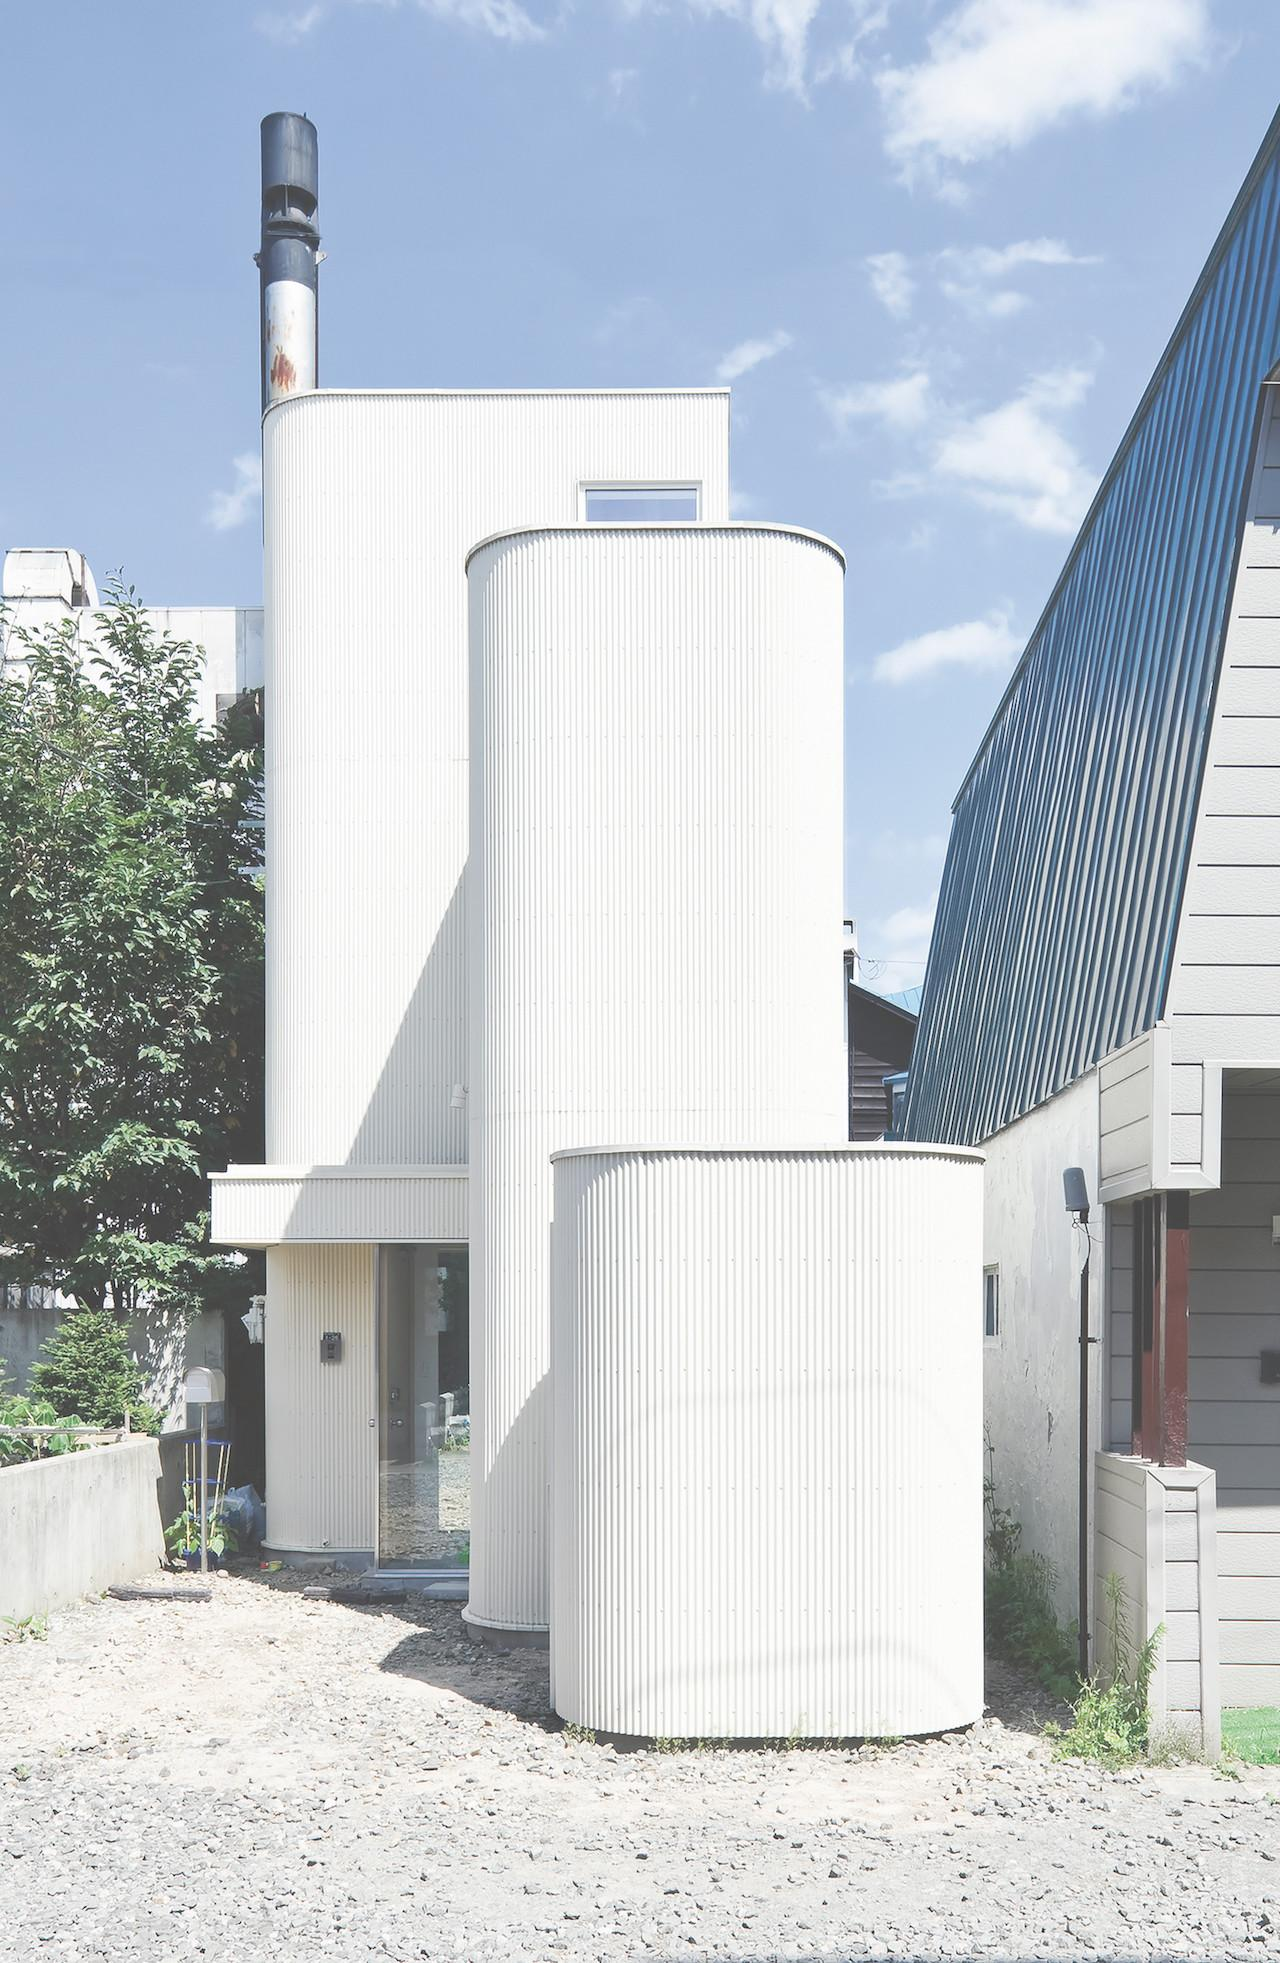 Why Japan Futuristic Micro Homes Popular